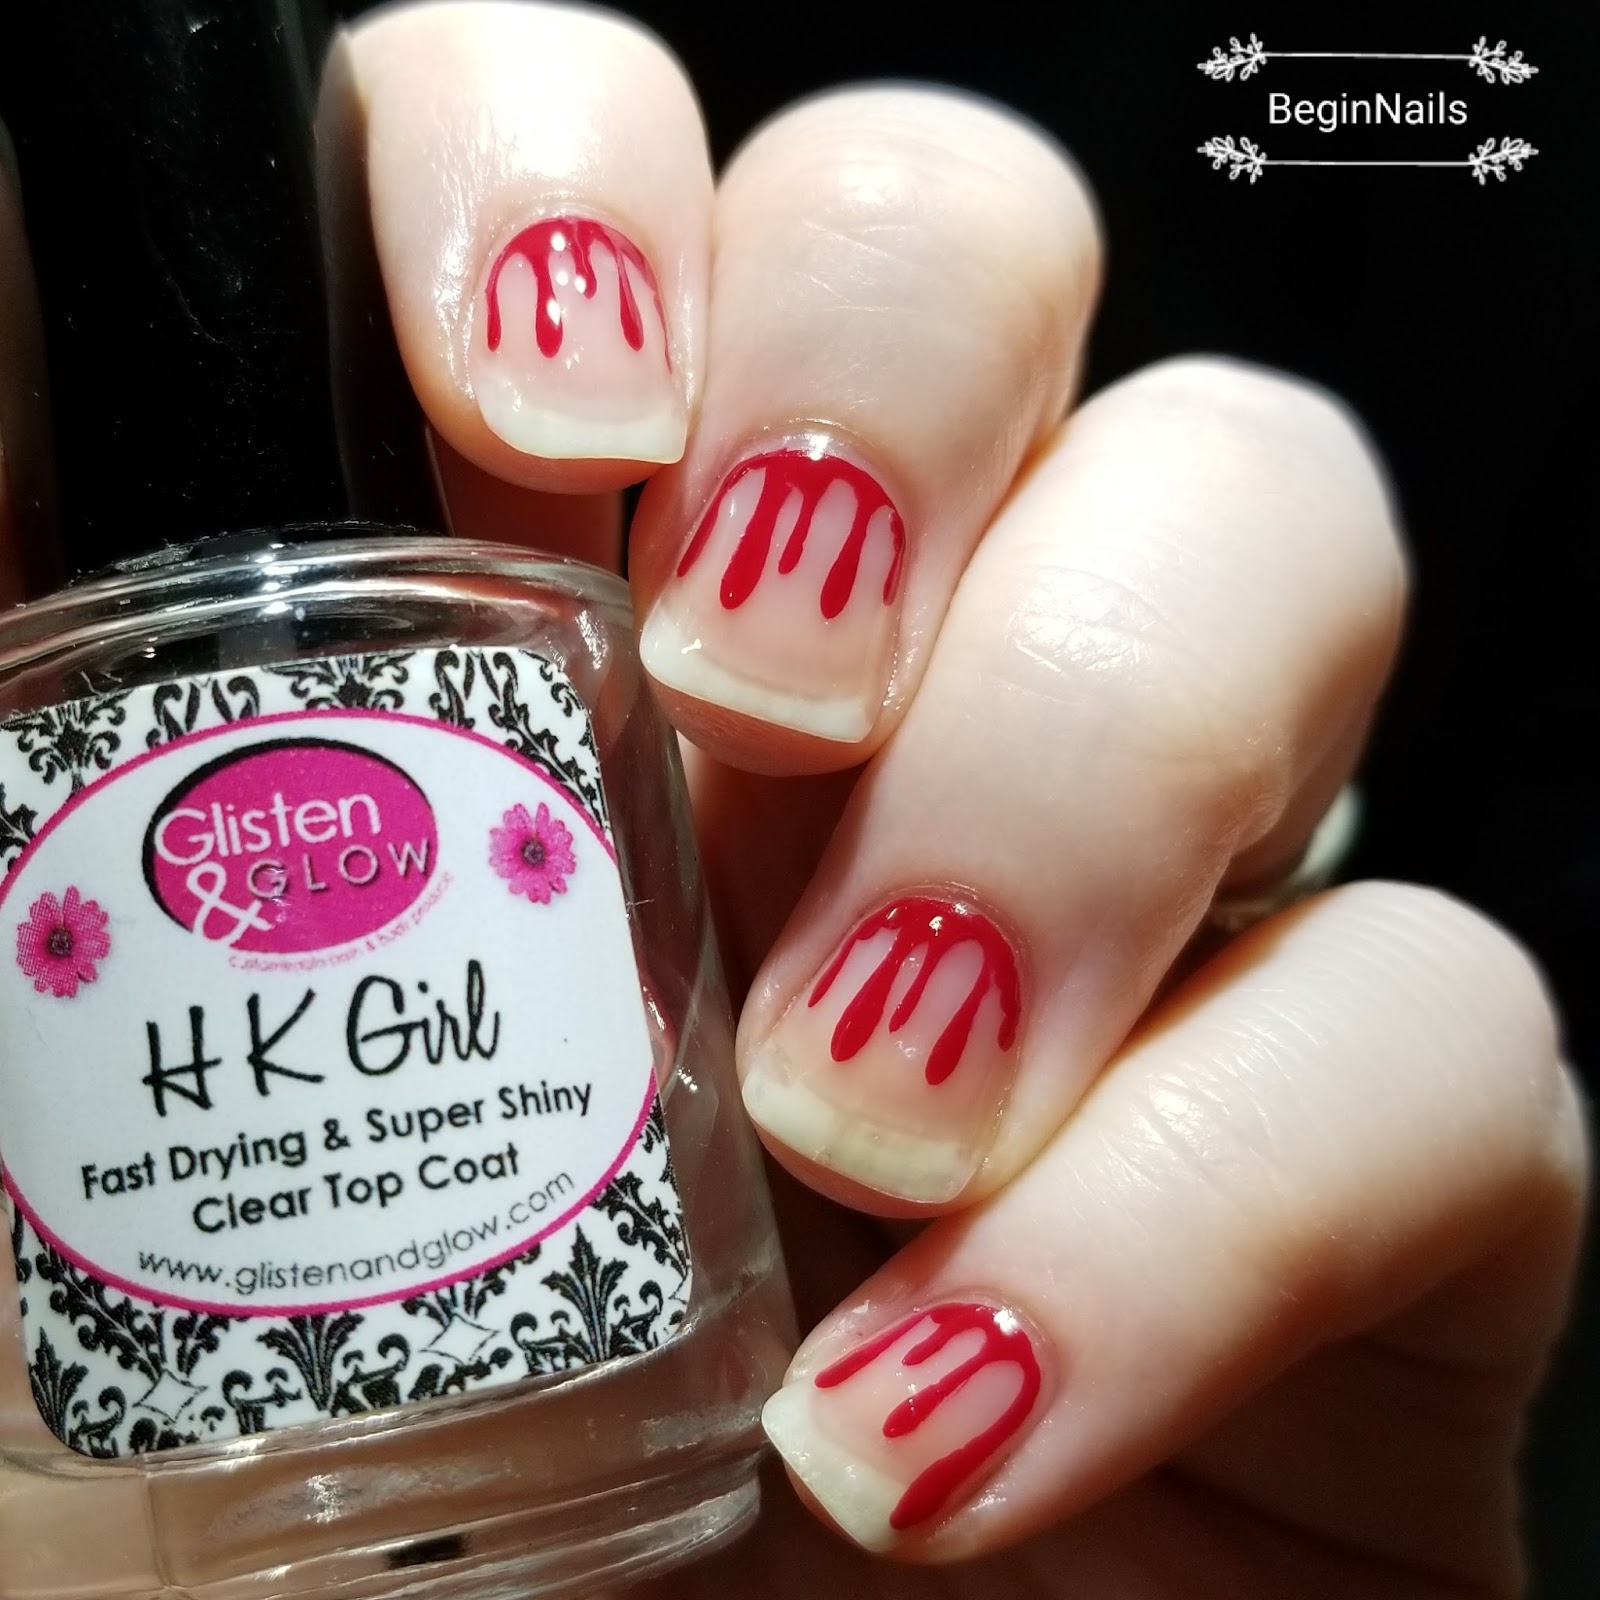 Lets begin nails 26 great nail art ideas halloween with i placed the vinyls down and painted with little red dress i added a top coat these were so easy and fast to get done i love them prinsesfo Choice Image